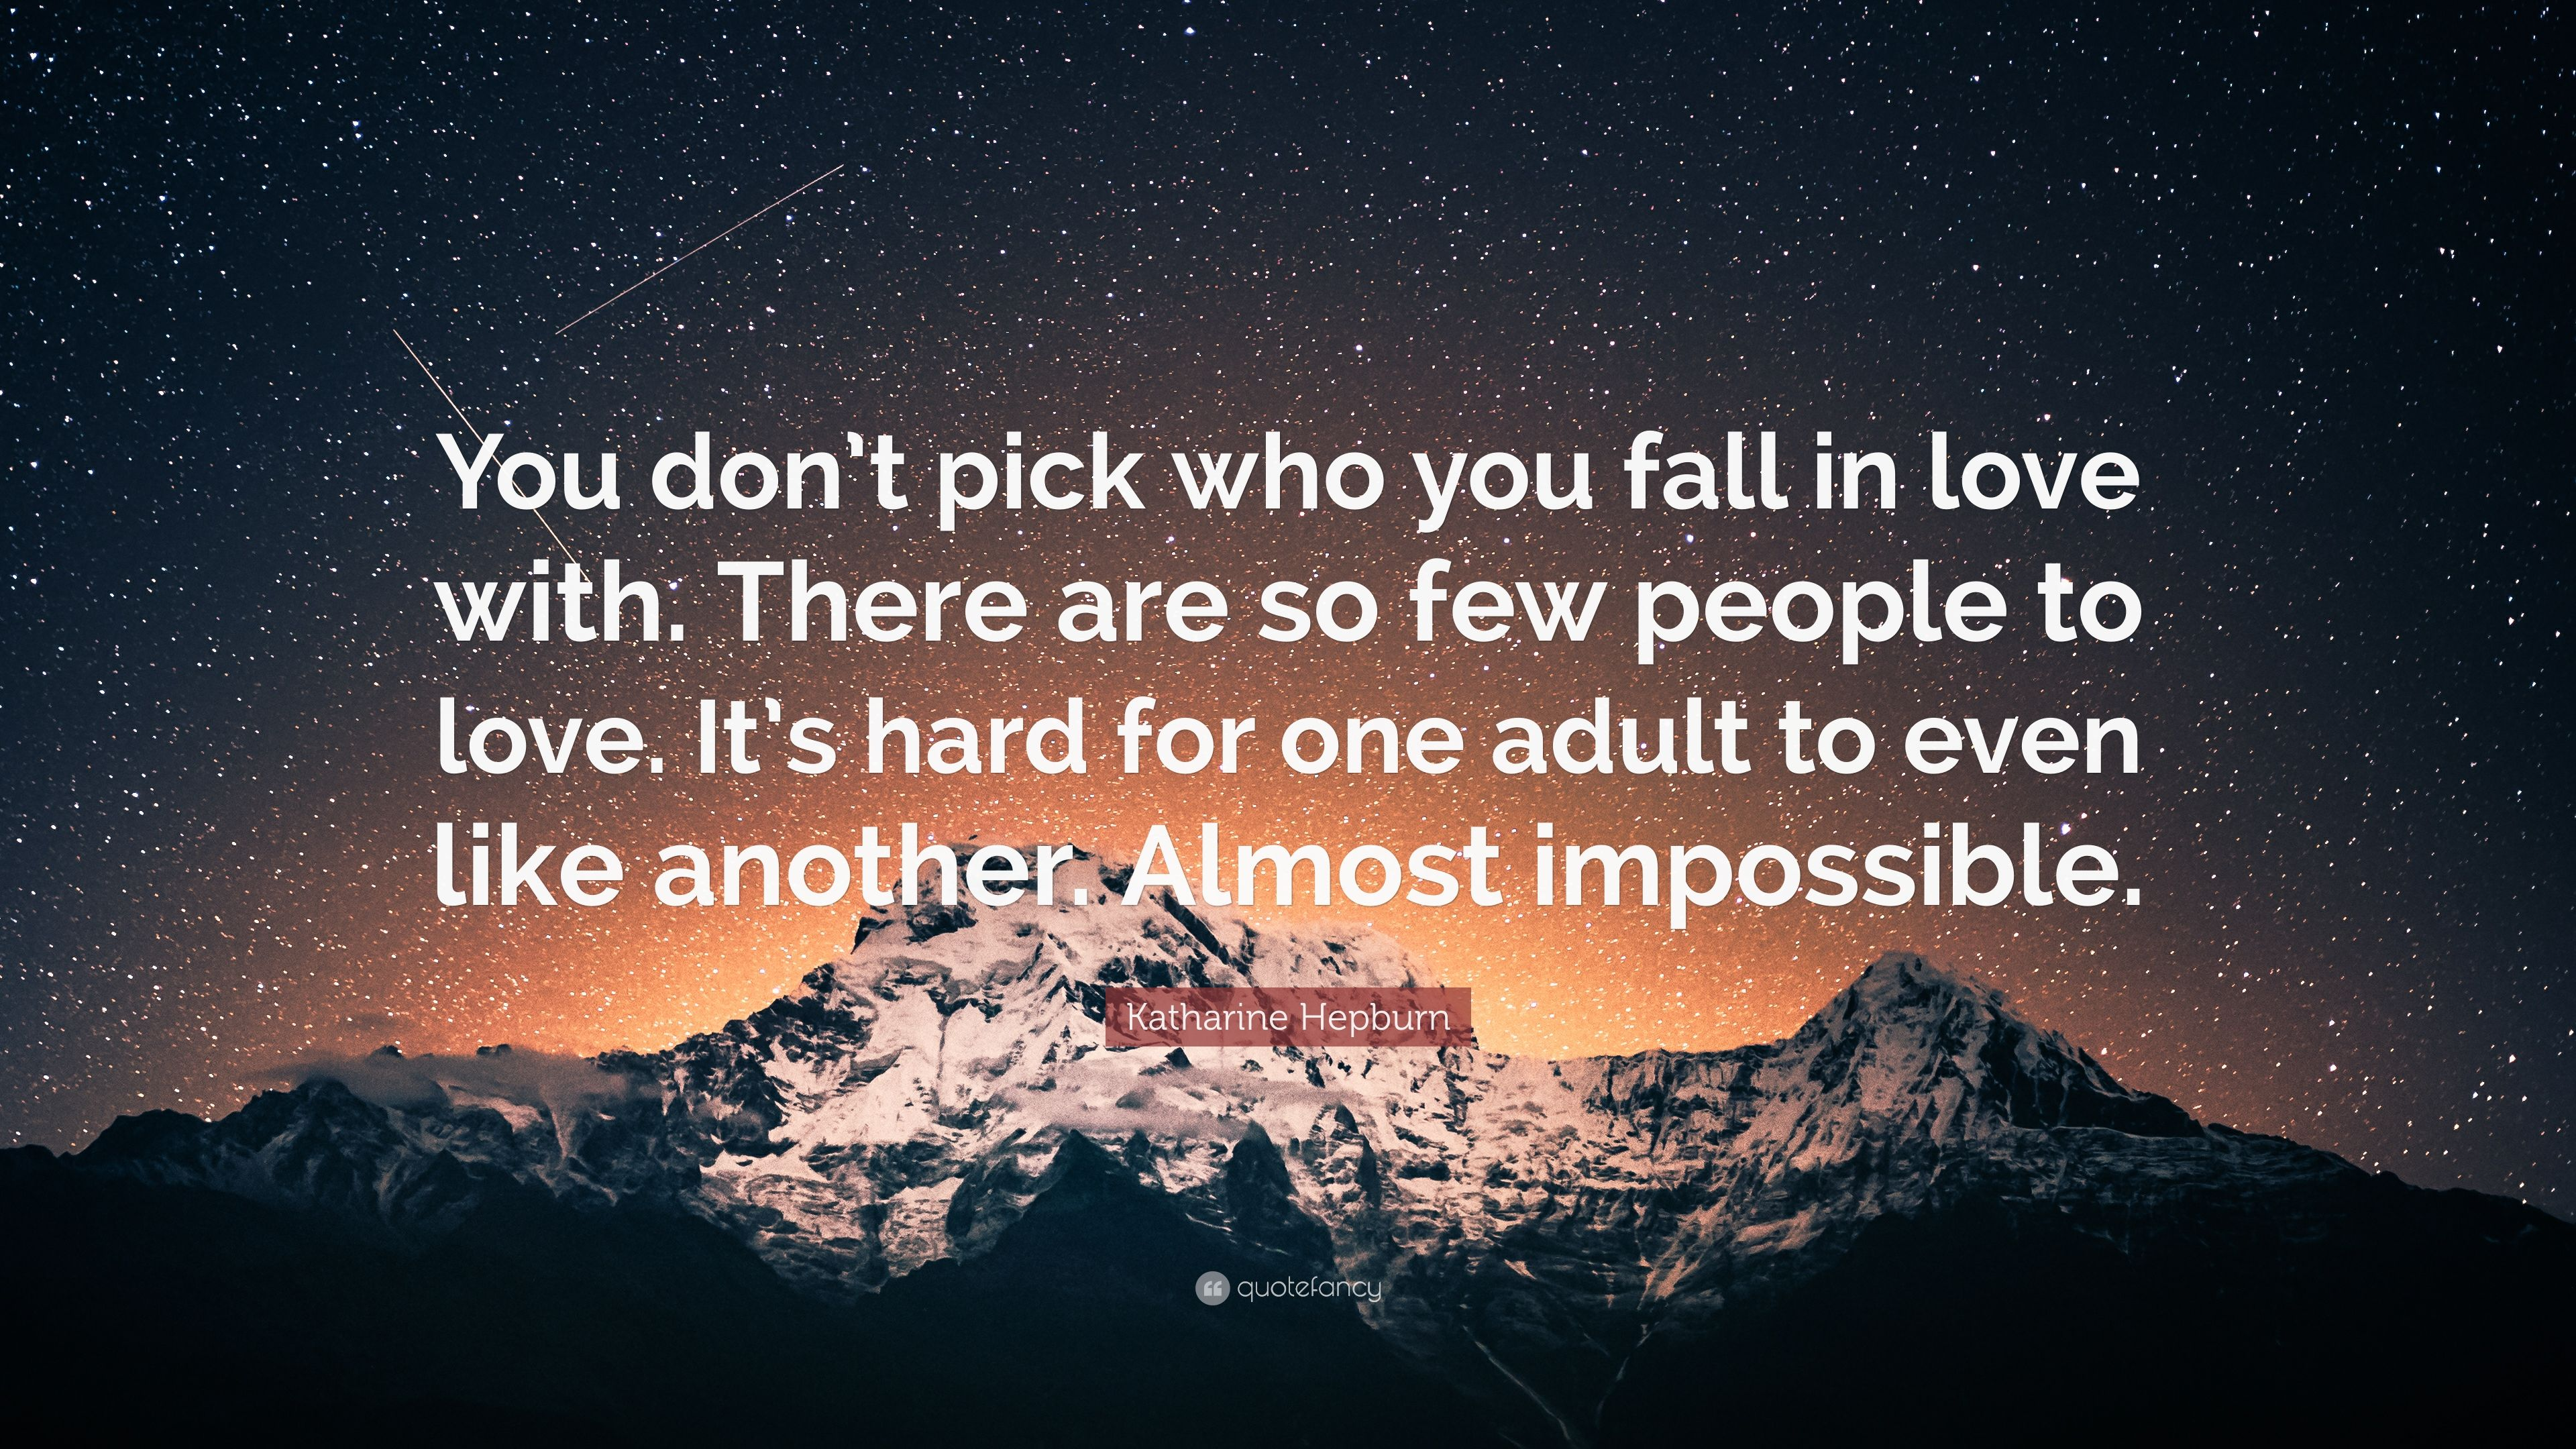 Fall in love with the one who makes it impossible for you to fall in love with another